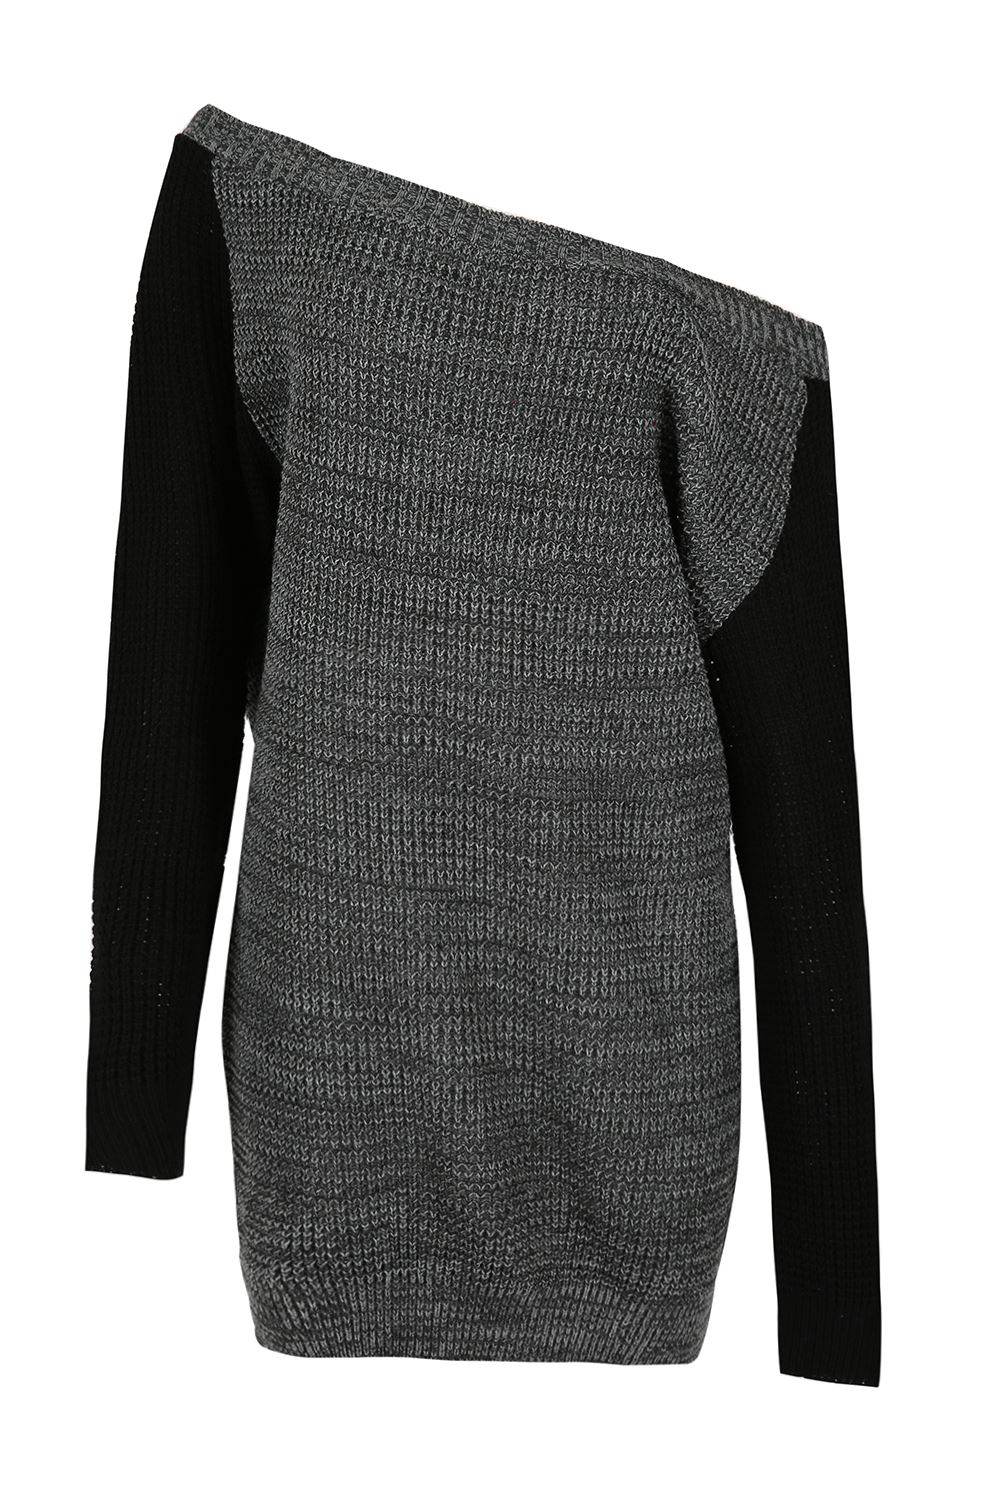 Womens-Oversized-Jumper-Ladies-Dress-Long-Sleeve-Chunky-Knitted-Long-Sweater-Top thumbnail 32